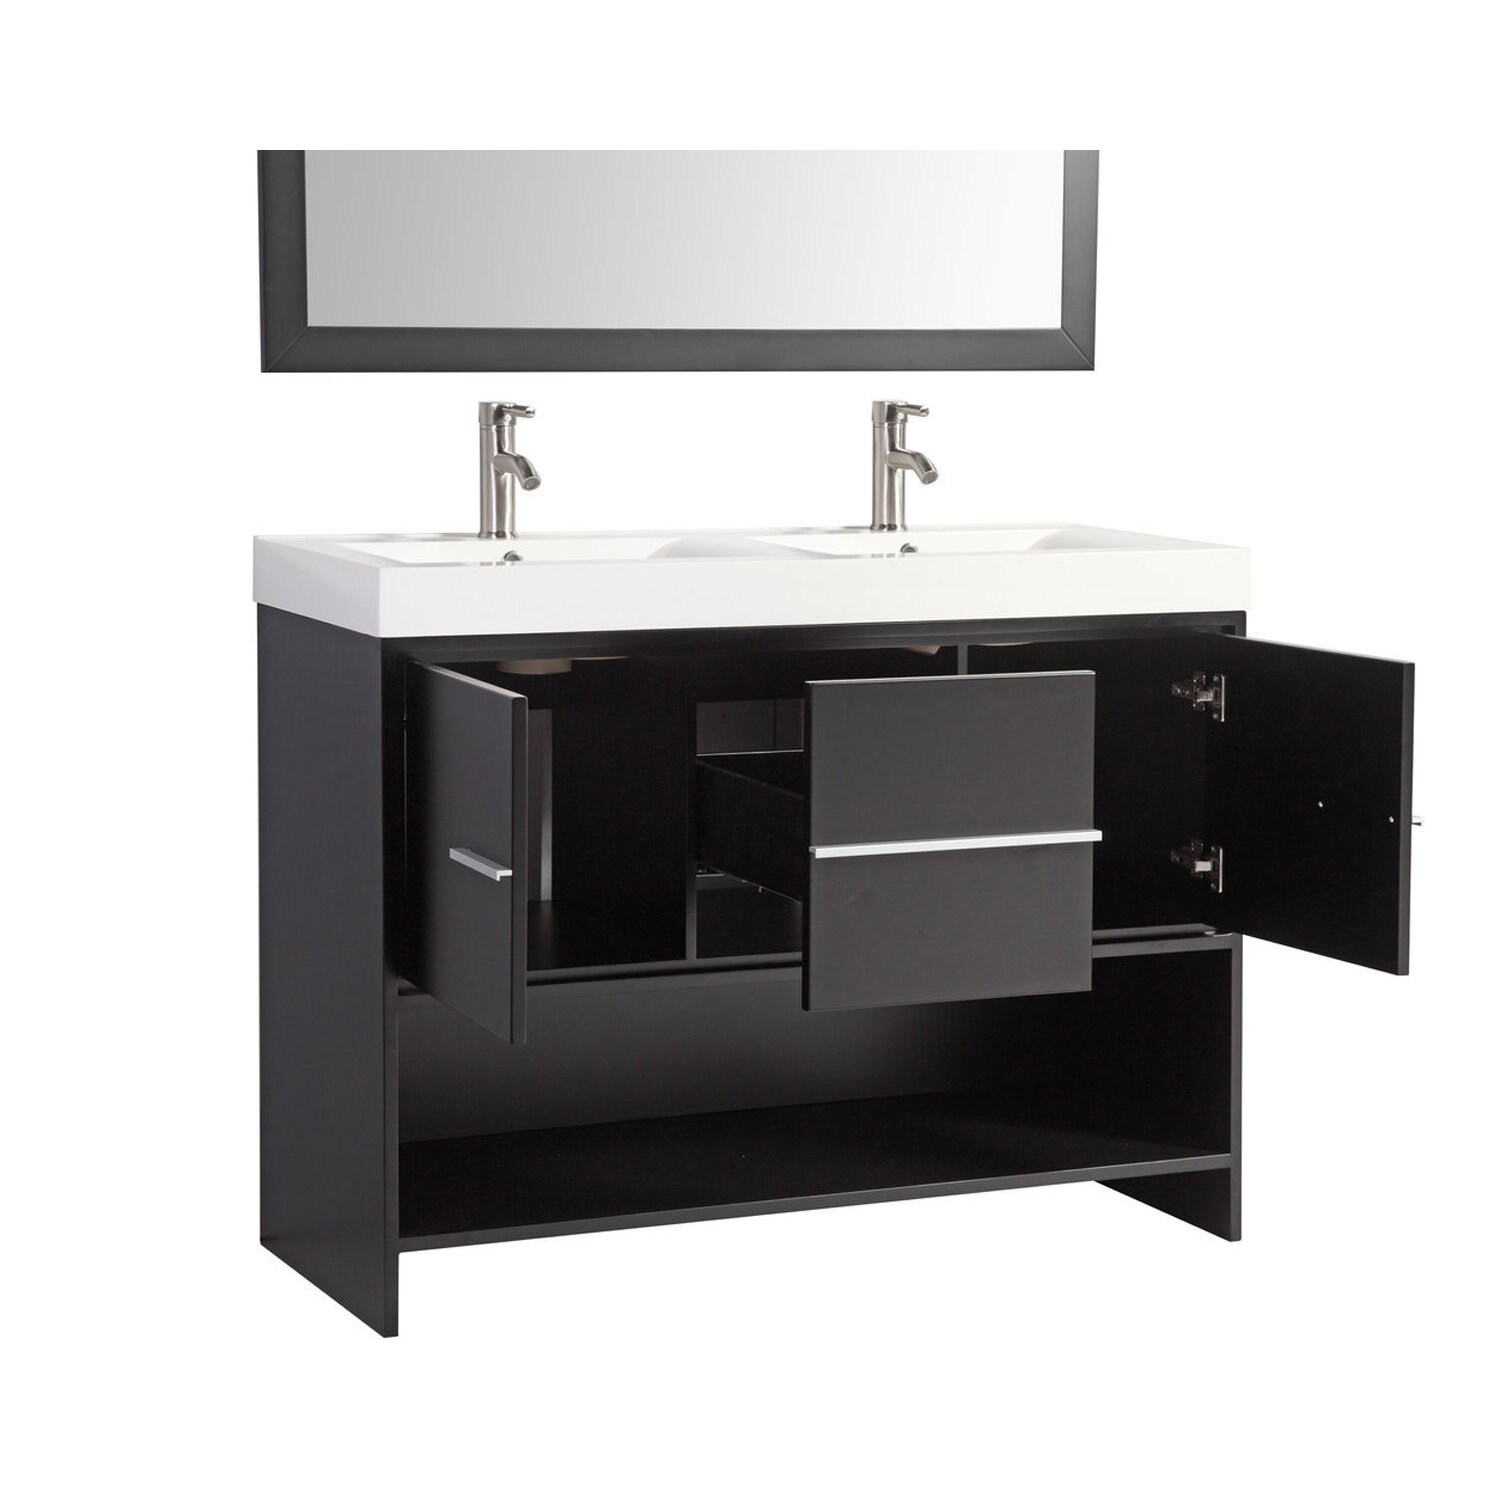 Mtdvanities belarus 48 double sink bathroom vanity set for 48 inch mirrored bathroom vanity